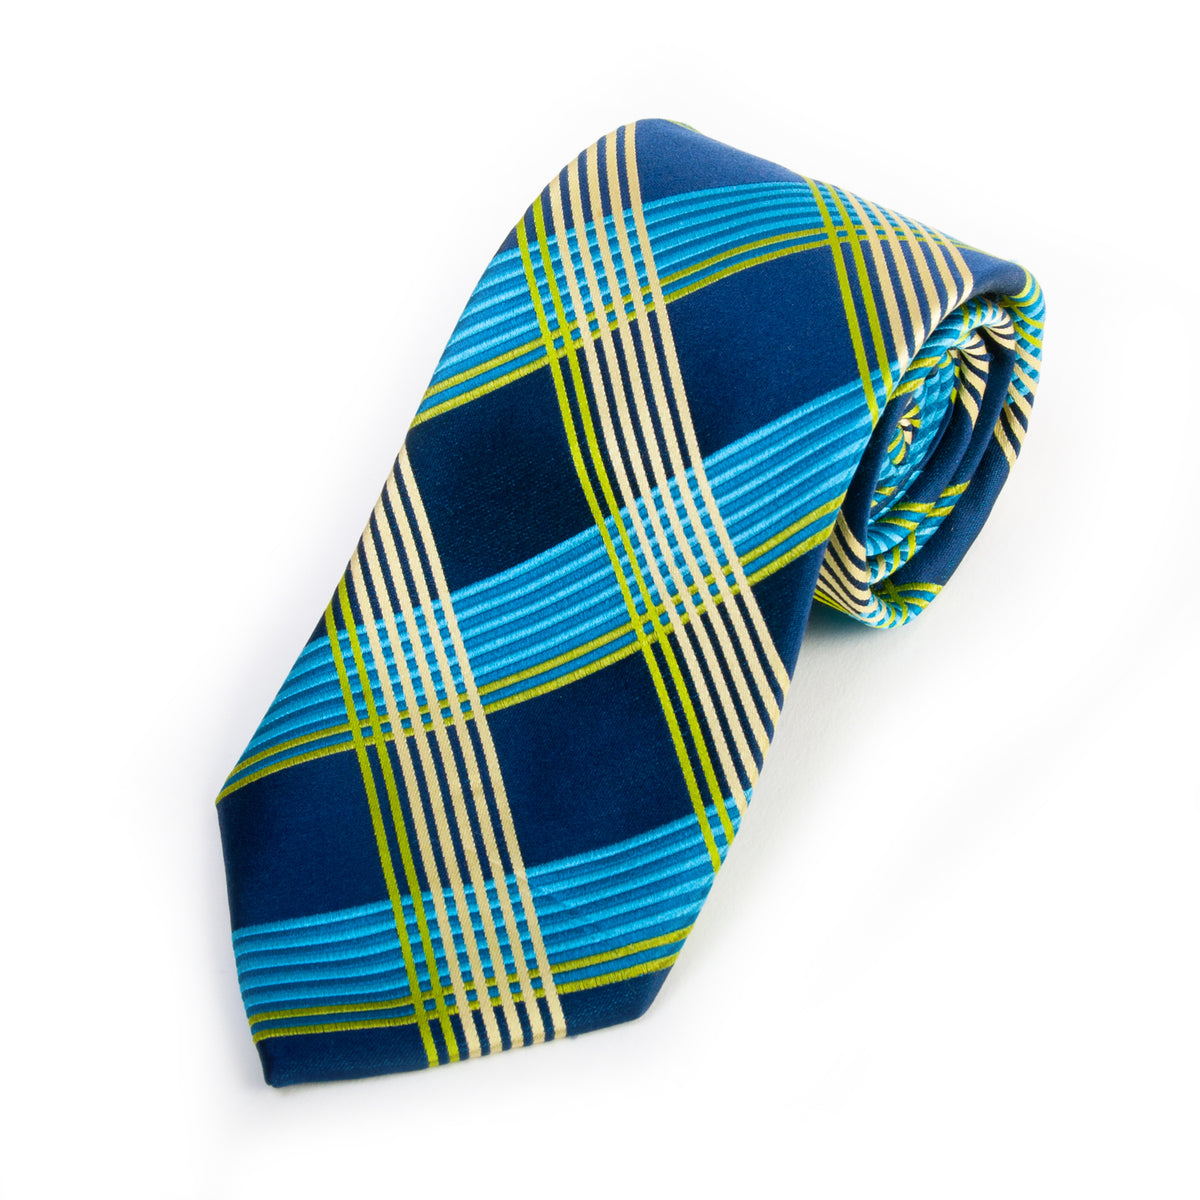 Ted Baker Blue Check Hand Tailored Silk Tie for Luxmrkt.com Menswear Consignment Edmonton